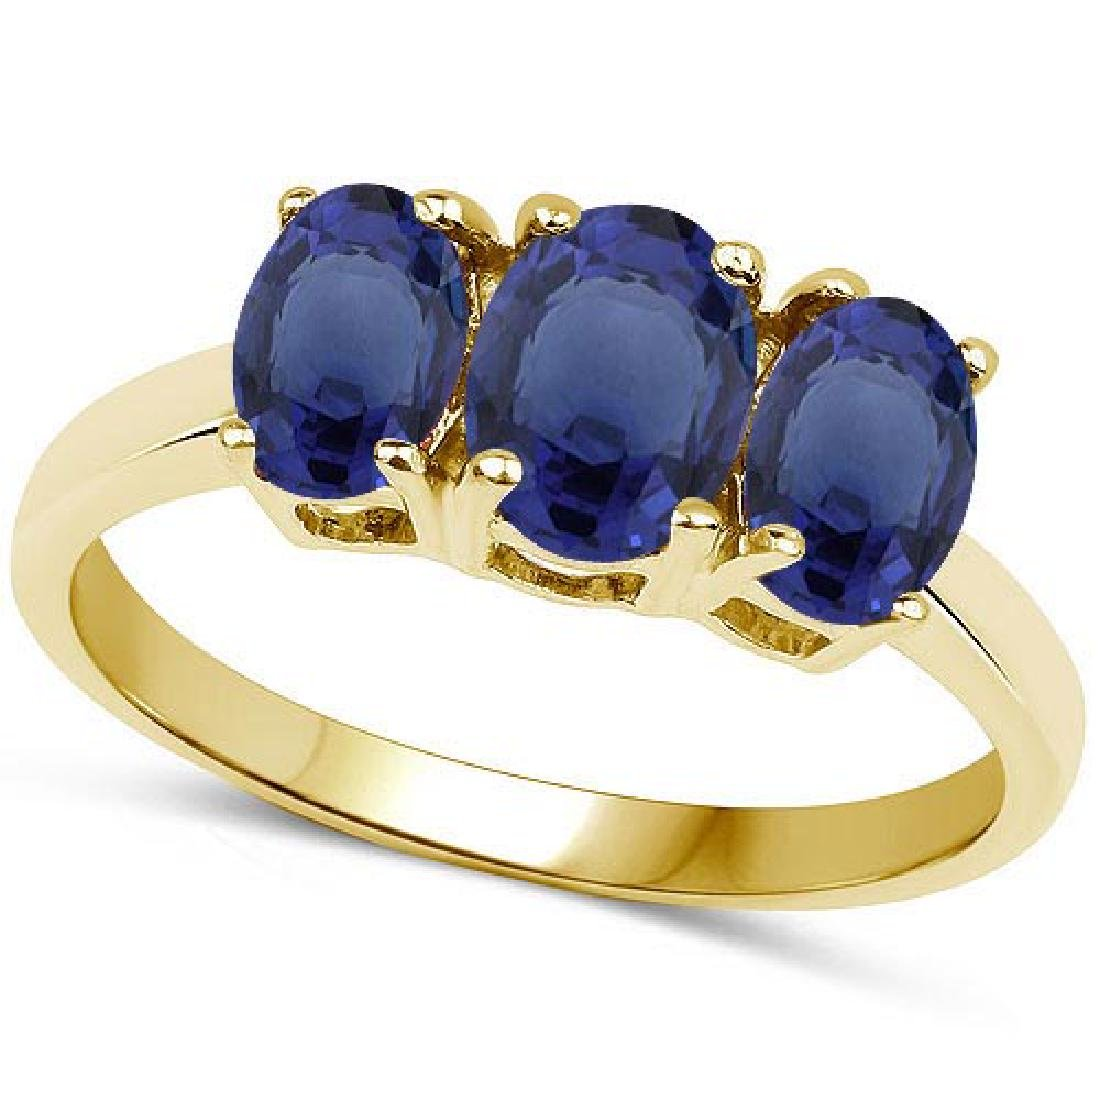 Certified 4.70 CTW Genuine Blue Sapphire And 14K Yellow